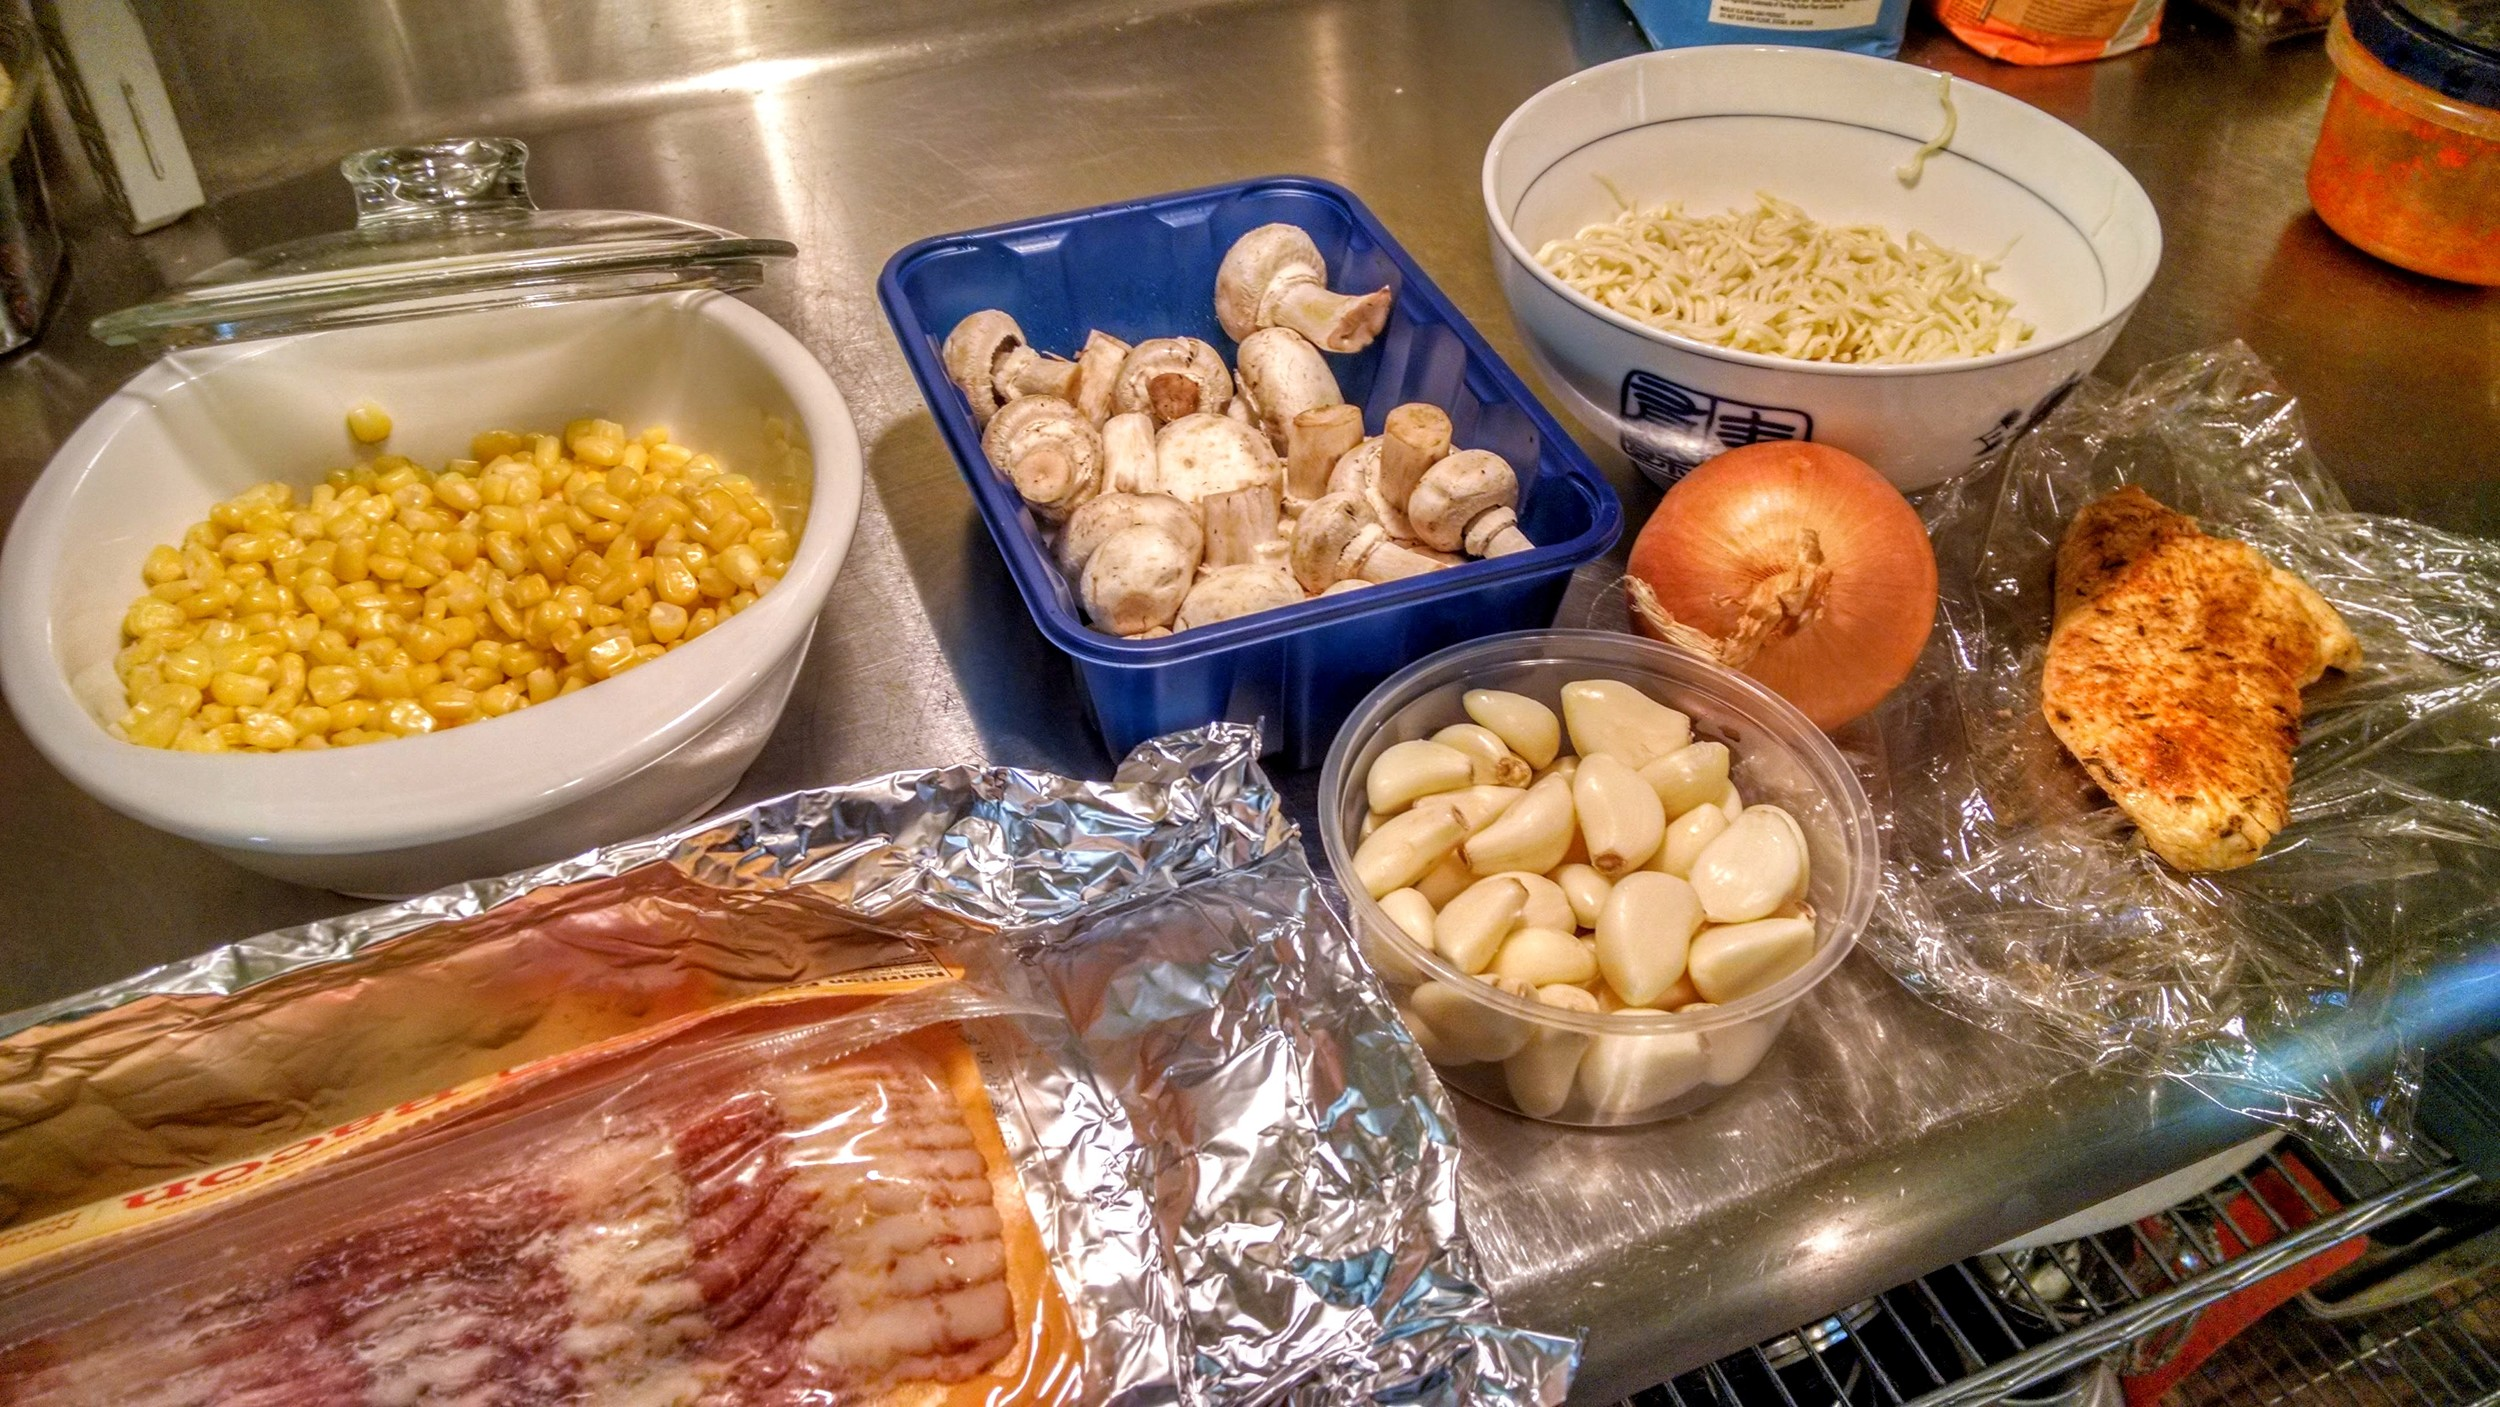 Sweet Corn (from frozen), button mushrooms, homemade pasta, bacon, garlic, onions and roasted chicken breast. Cheddar cheese will be added on top at the end.